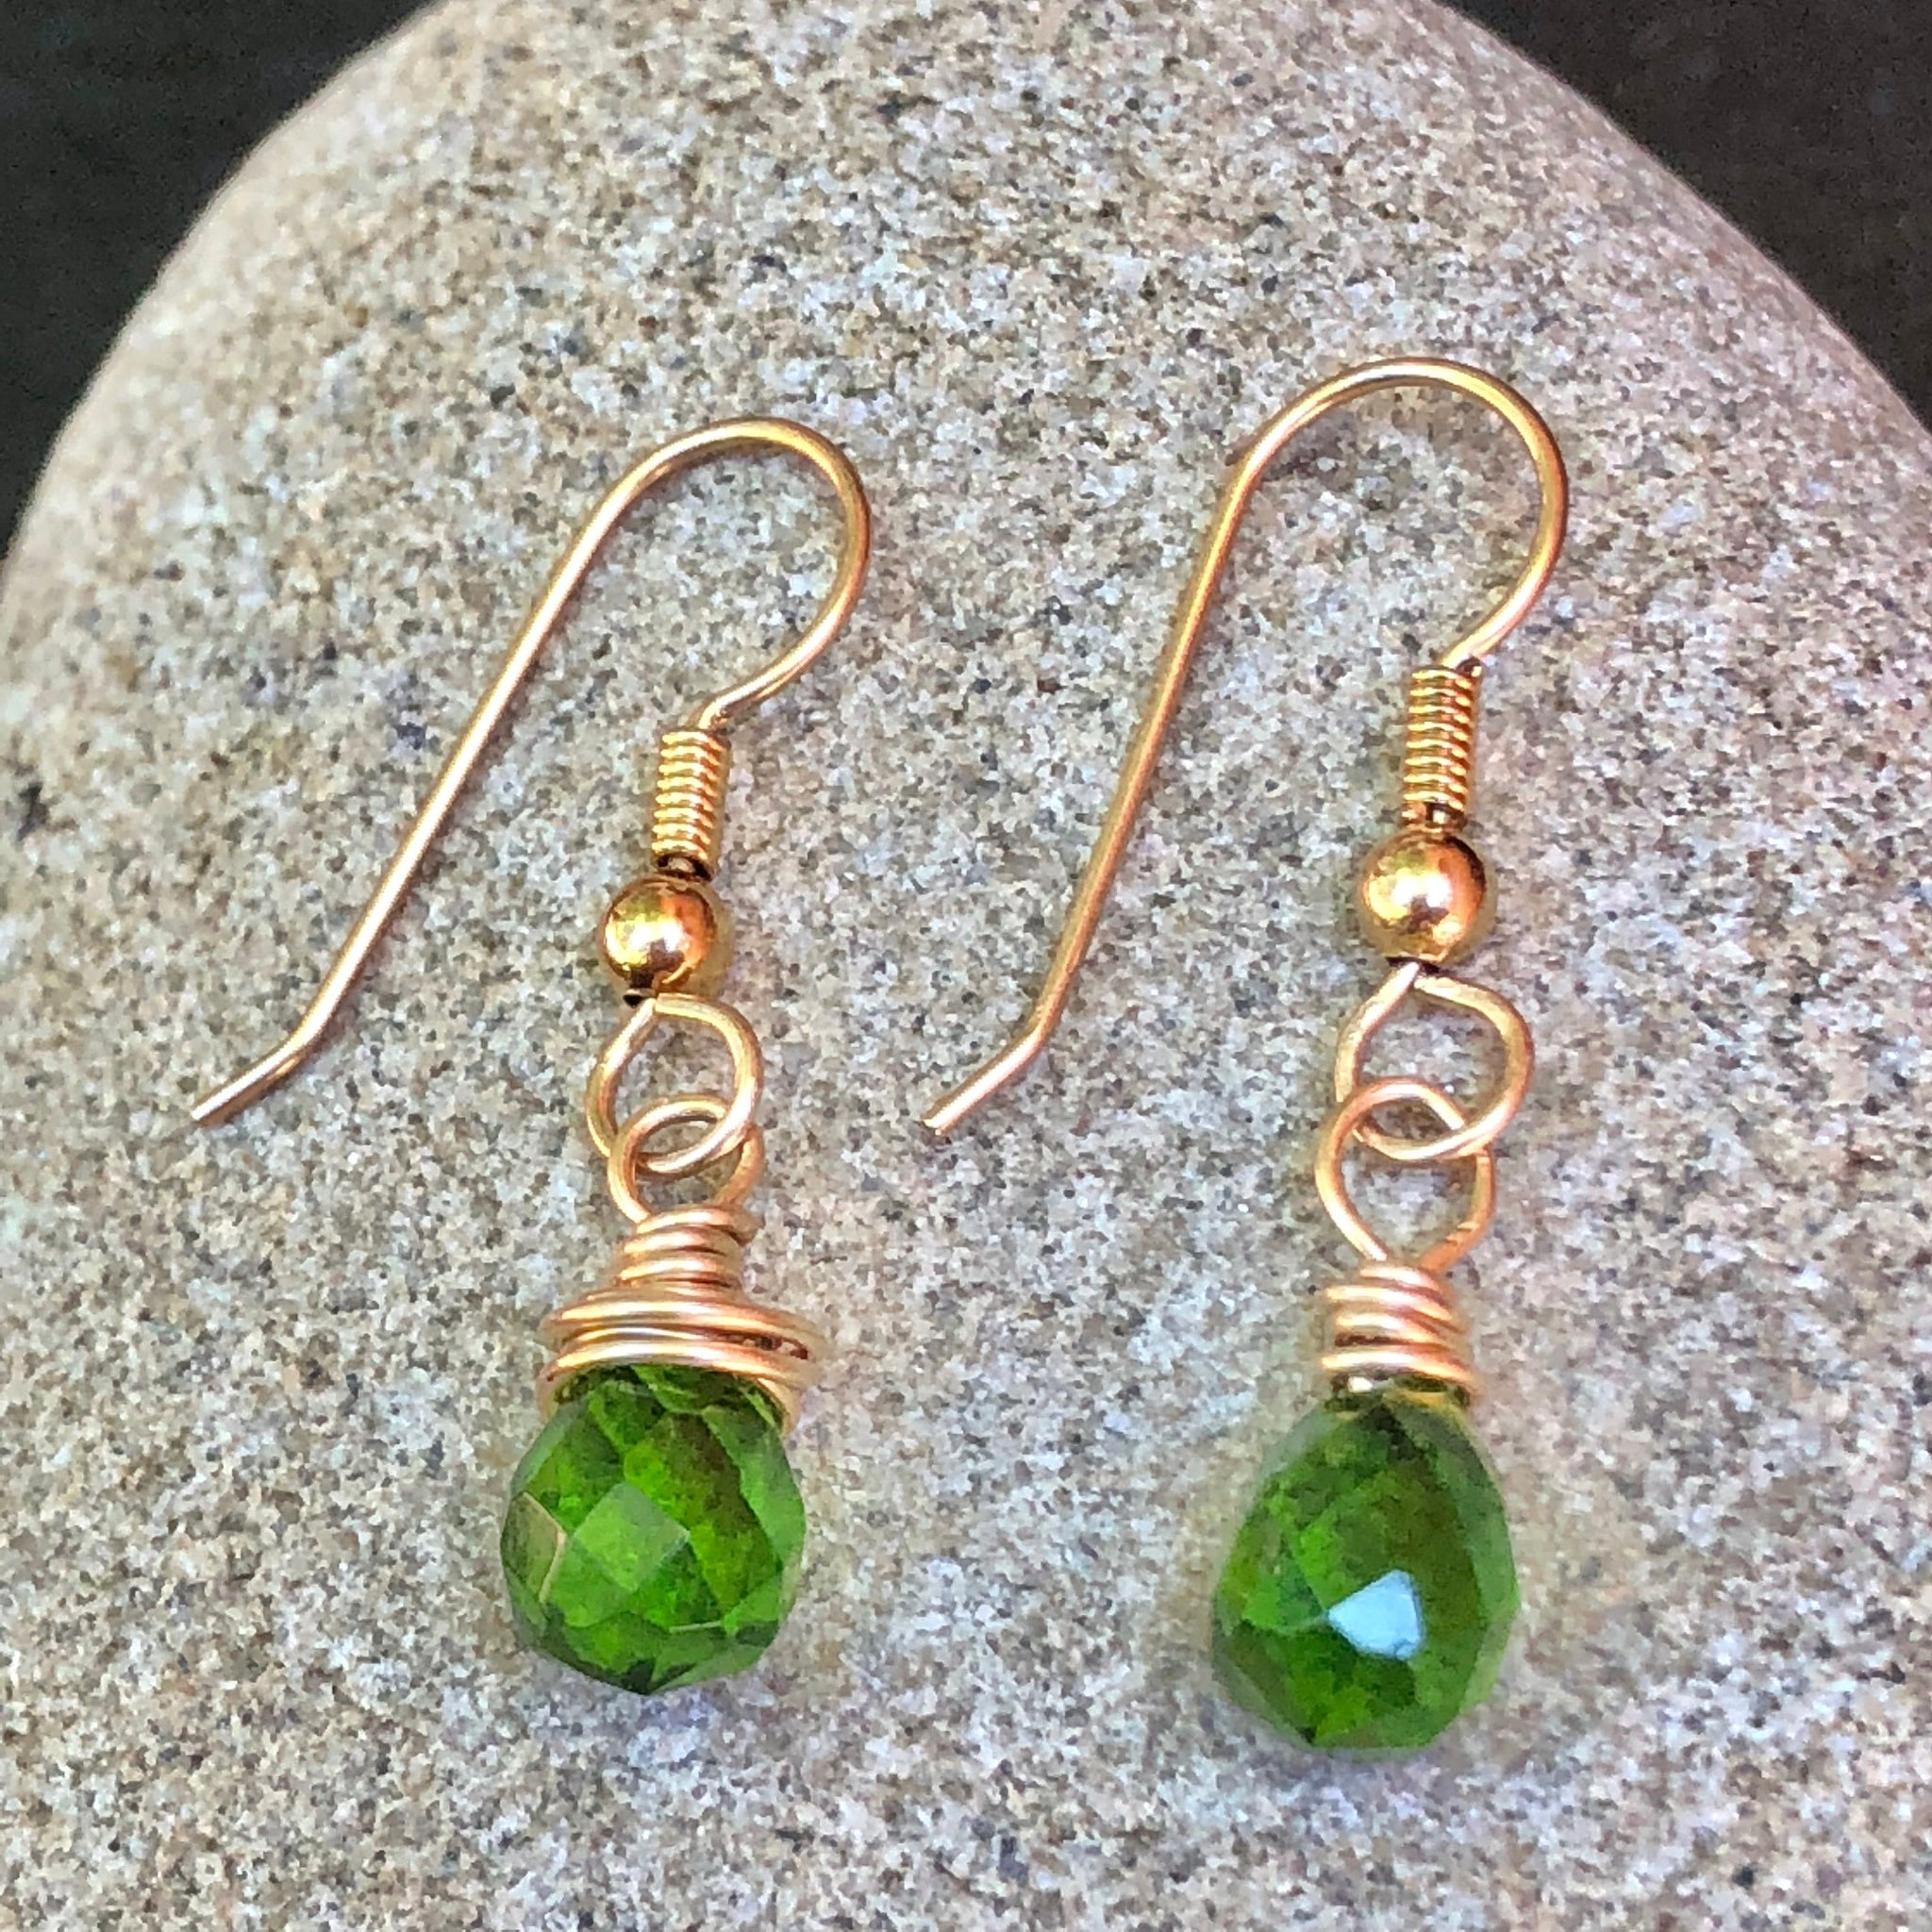 Peridot Gold Drop Earrings 14k Gold Filled Faceted Green Gemstone